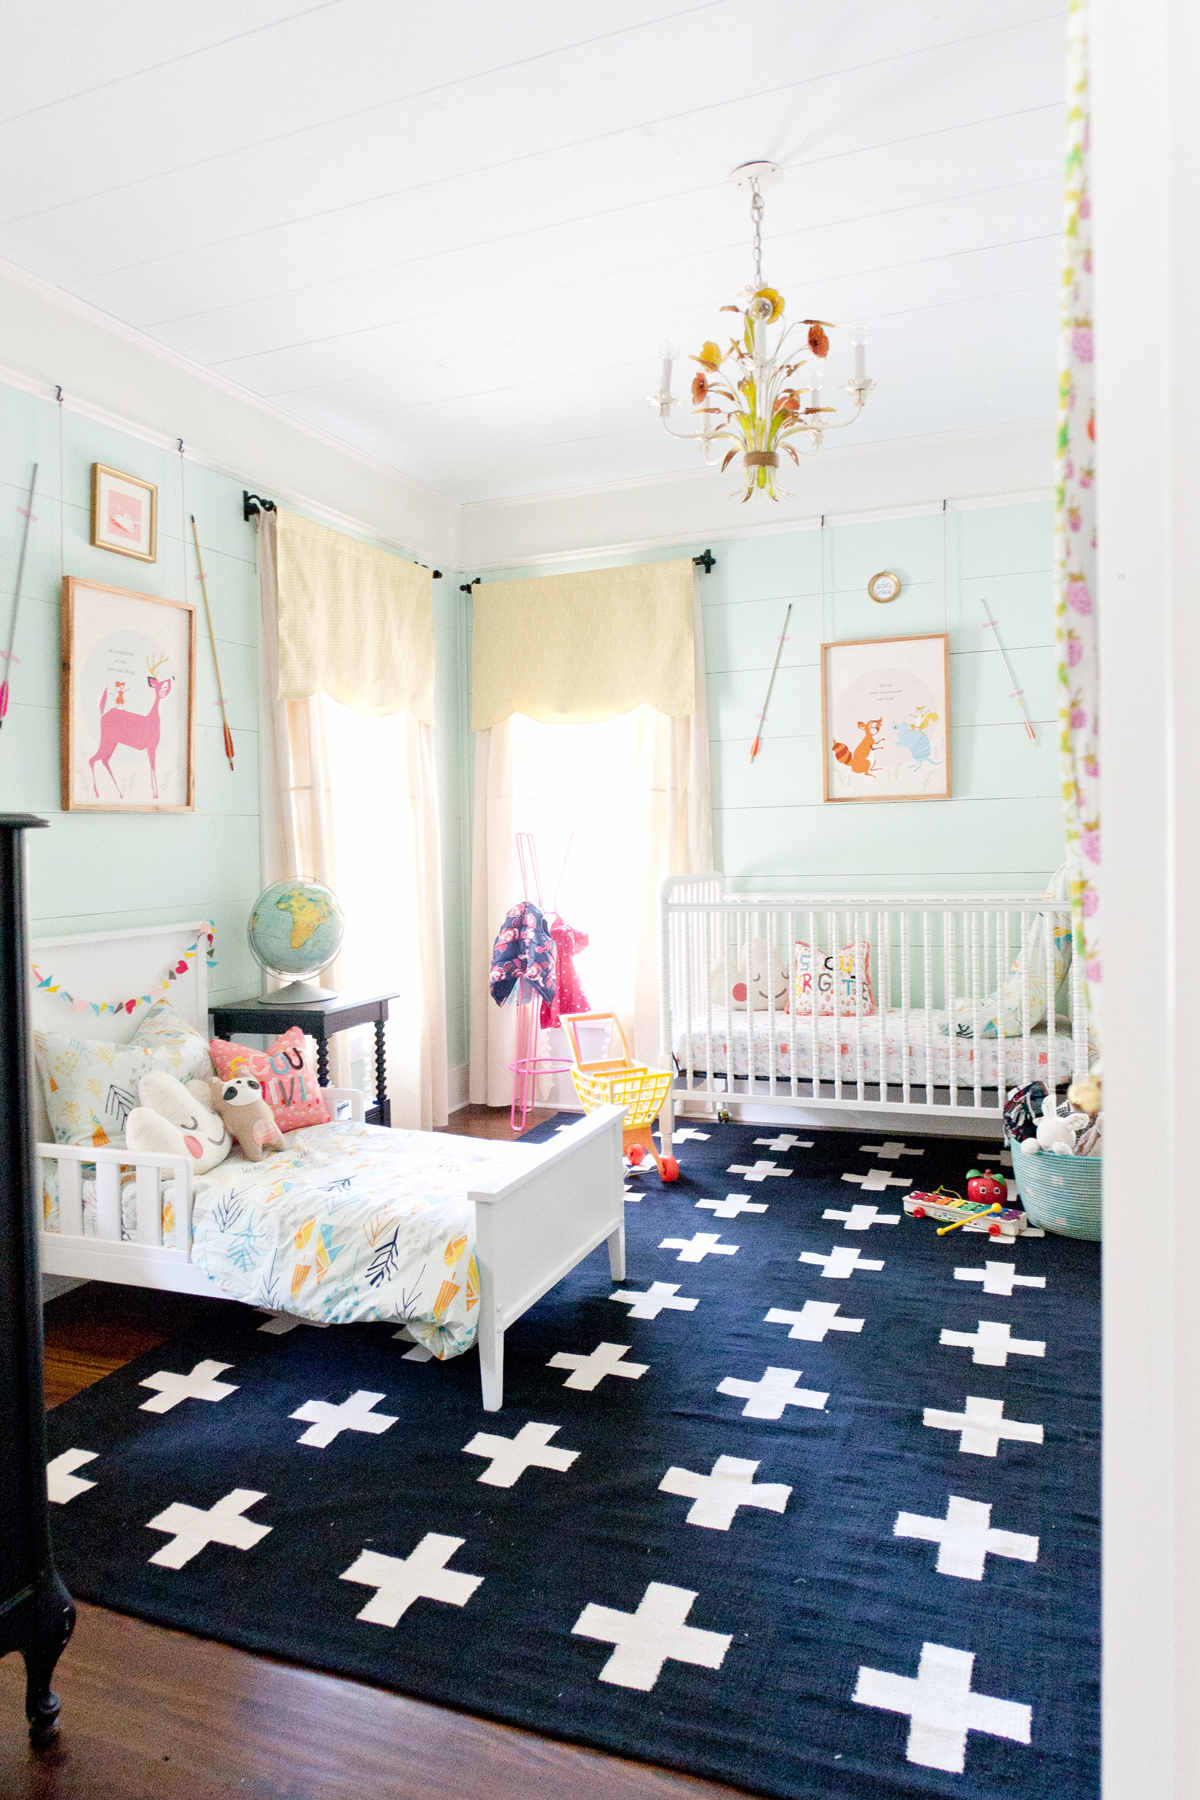 Shared room inspiration lay baby lay lay baby lay - Pics of beautiful room of girls ...